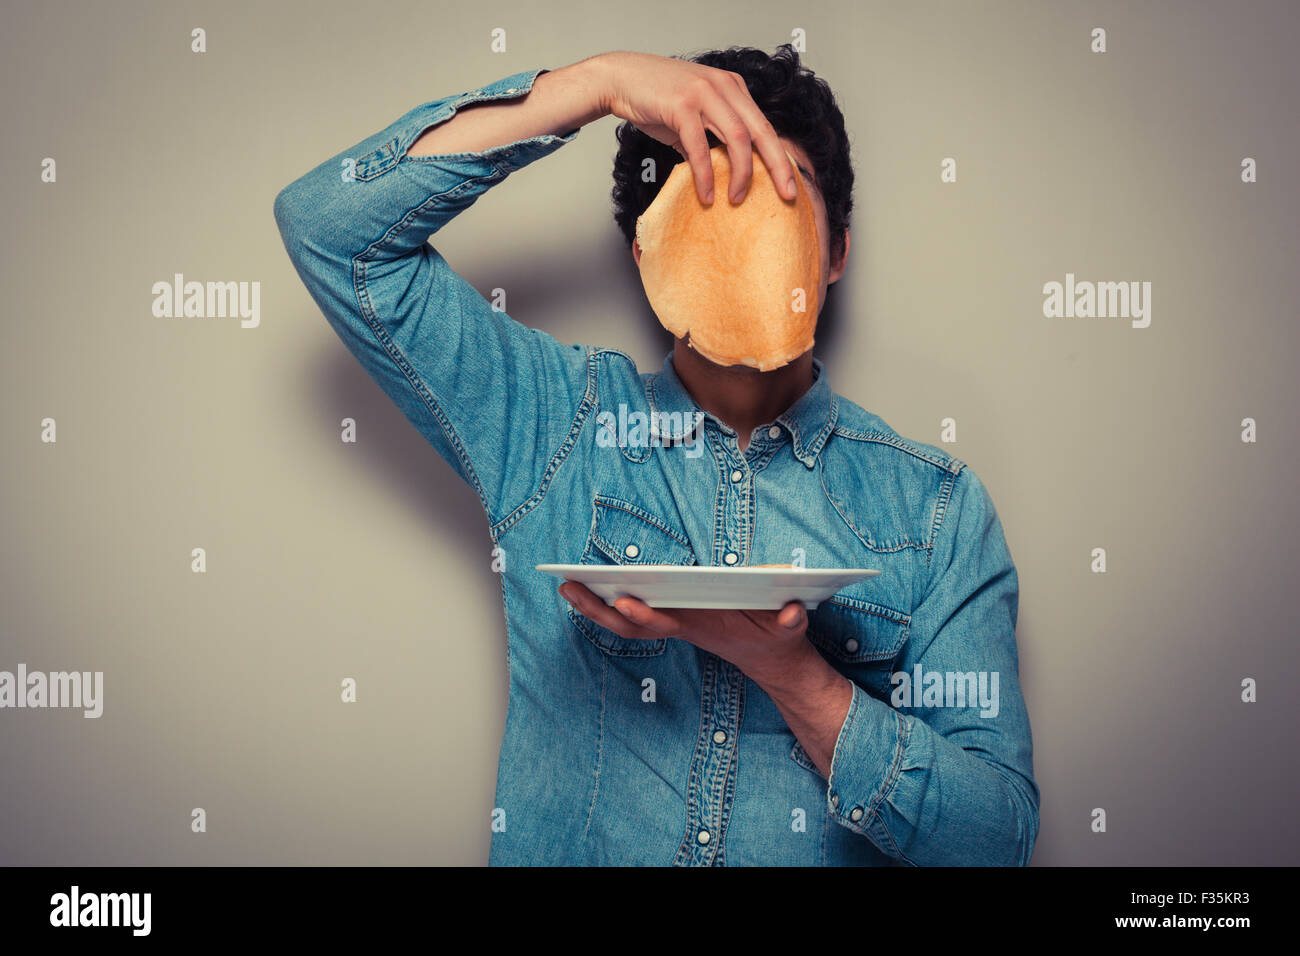 Young man is hiding his face behind a pancake - Stock Image